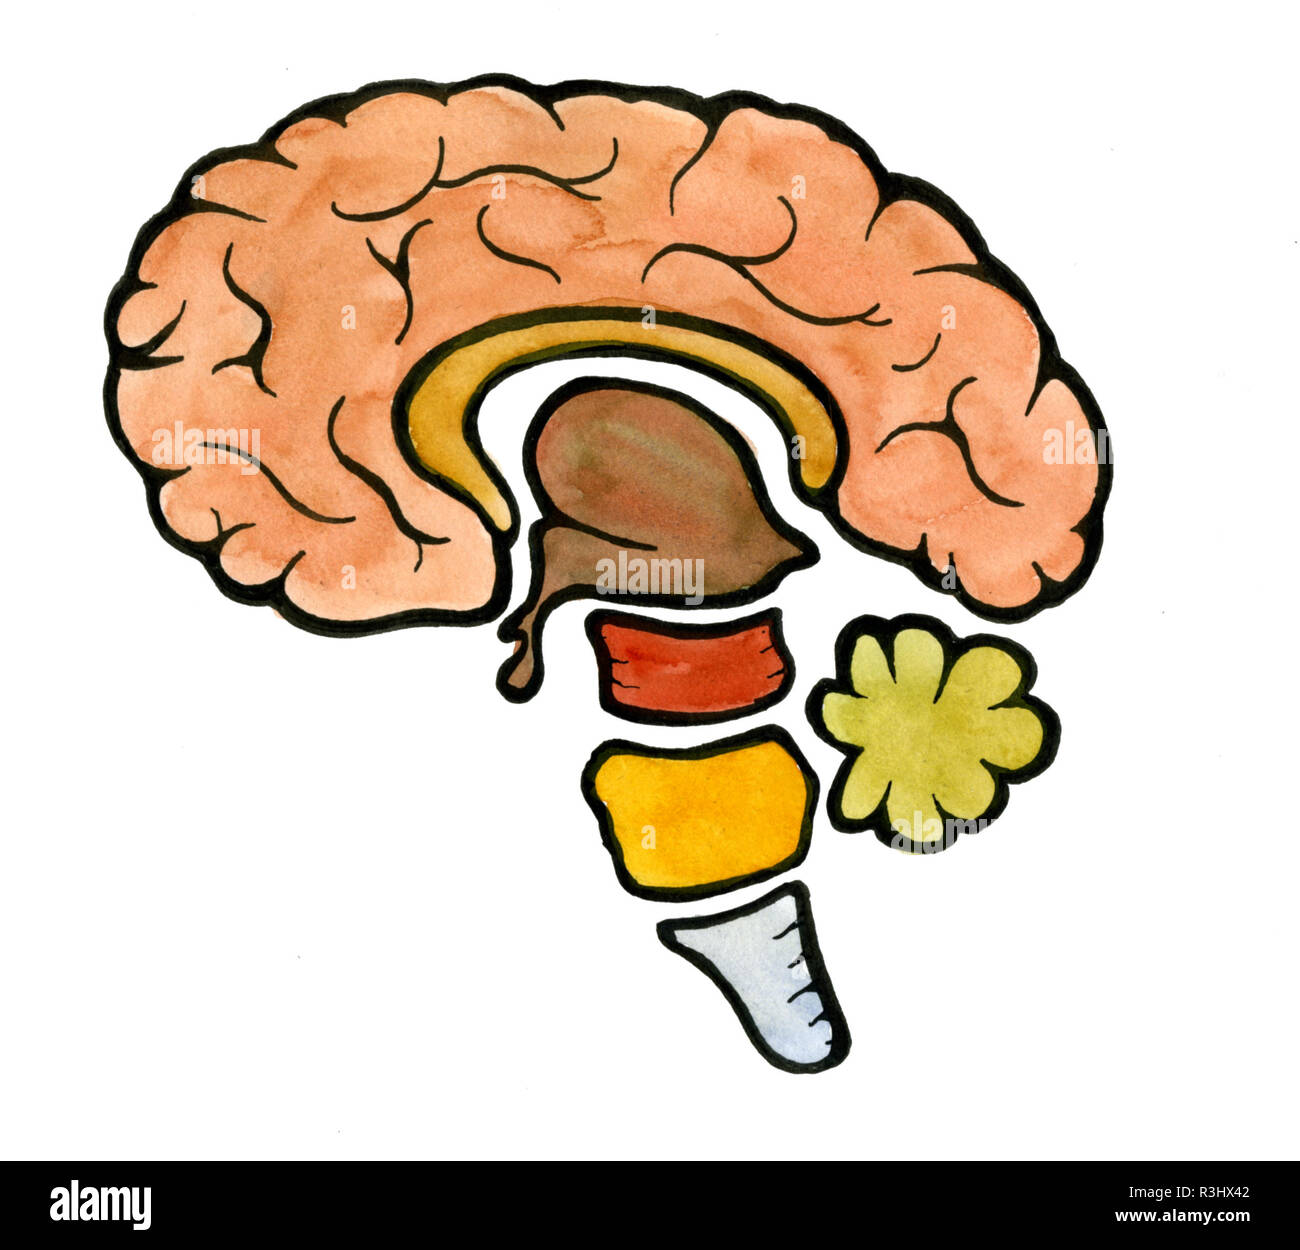 human brain,illustration - Stock Image